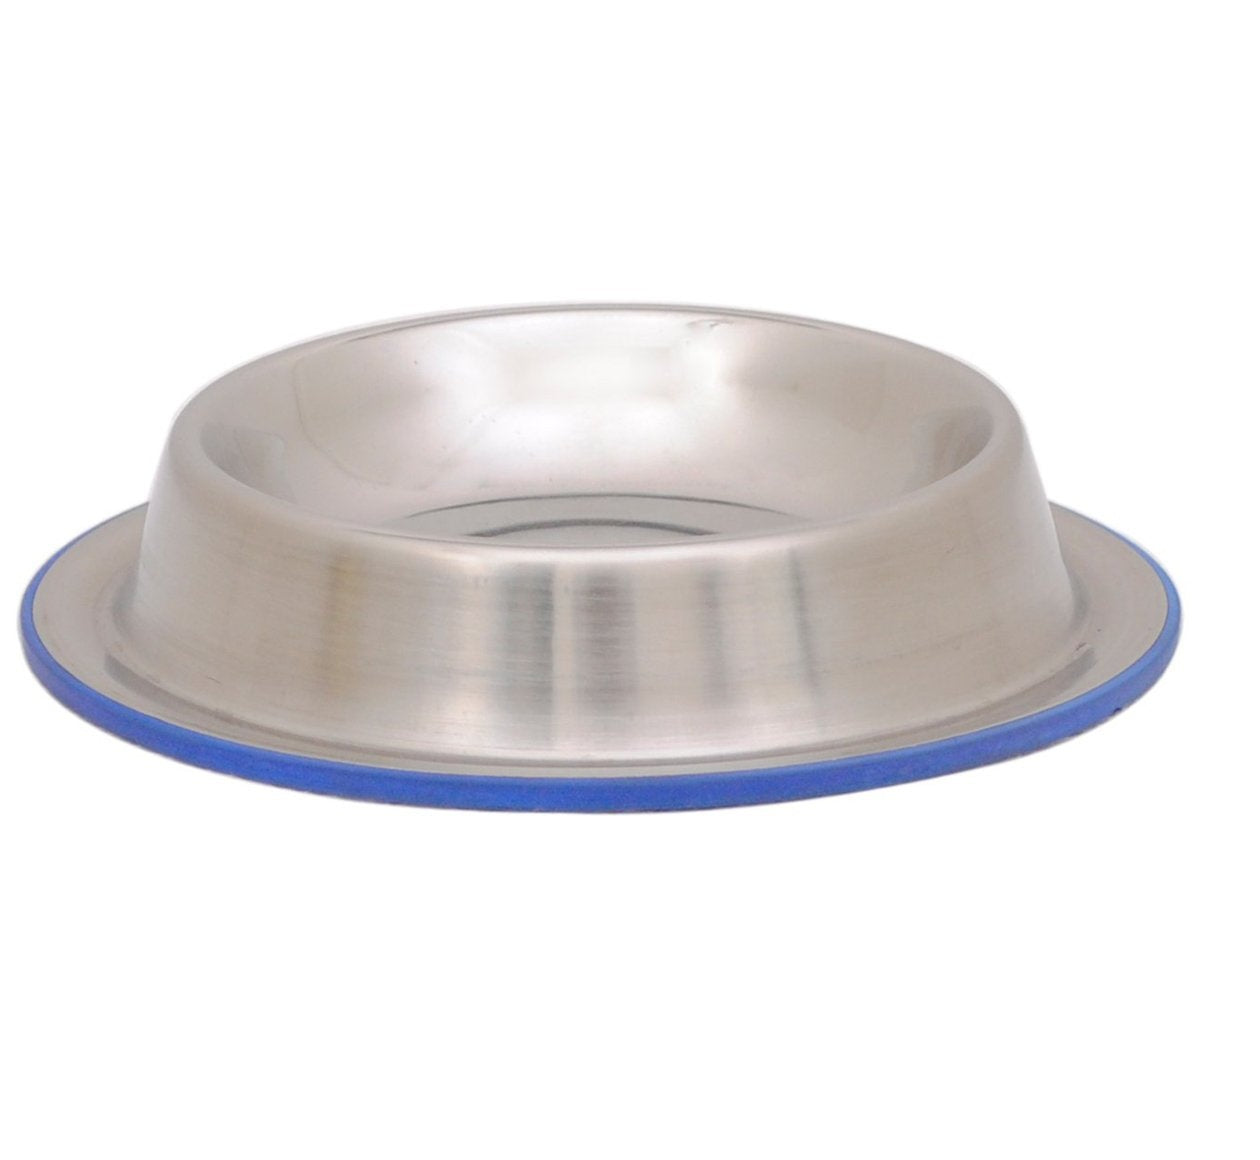 Goofy Tails Stainless Steel No Tip & Anti Skid Food Bowl for Dog - pet-club-india